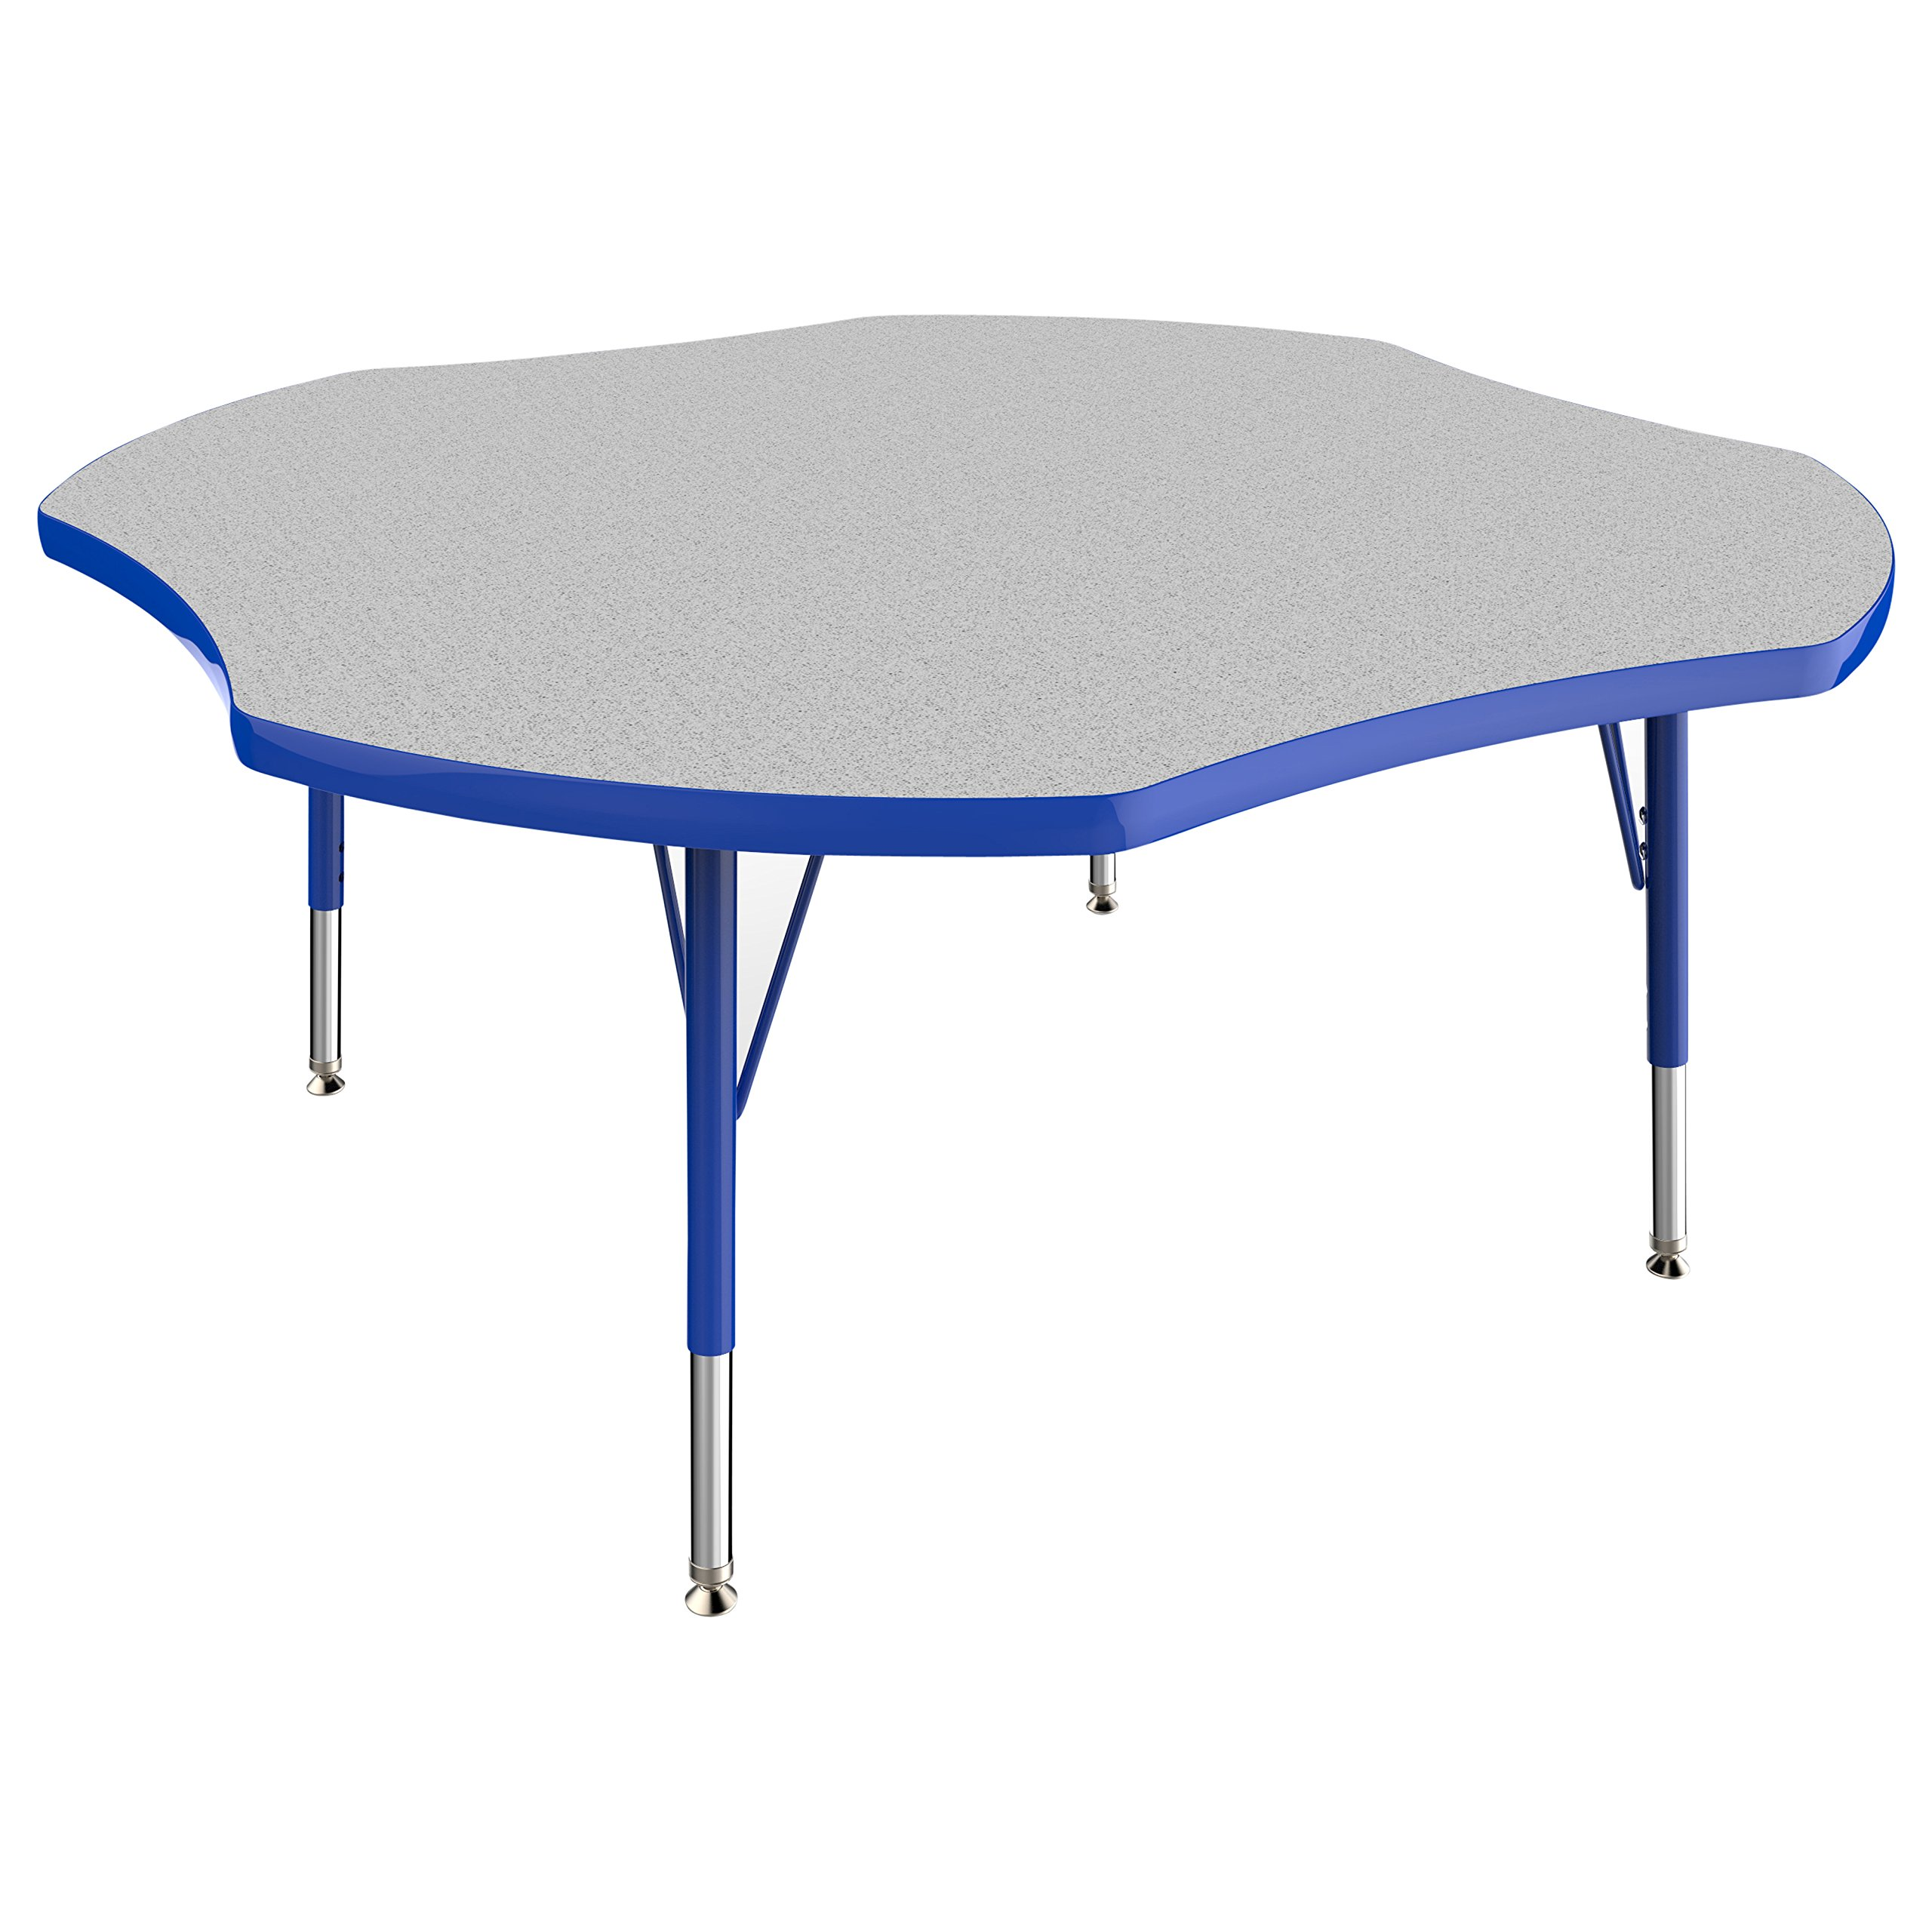 ECR4Kids Thermo-fused 48'' Clover School Activity Table, Toddler Legs w/ Swivel Glides, Adjustable Height 15-23 inch (Grey/Blue)